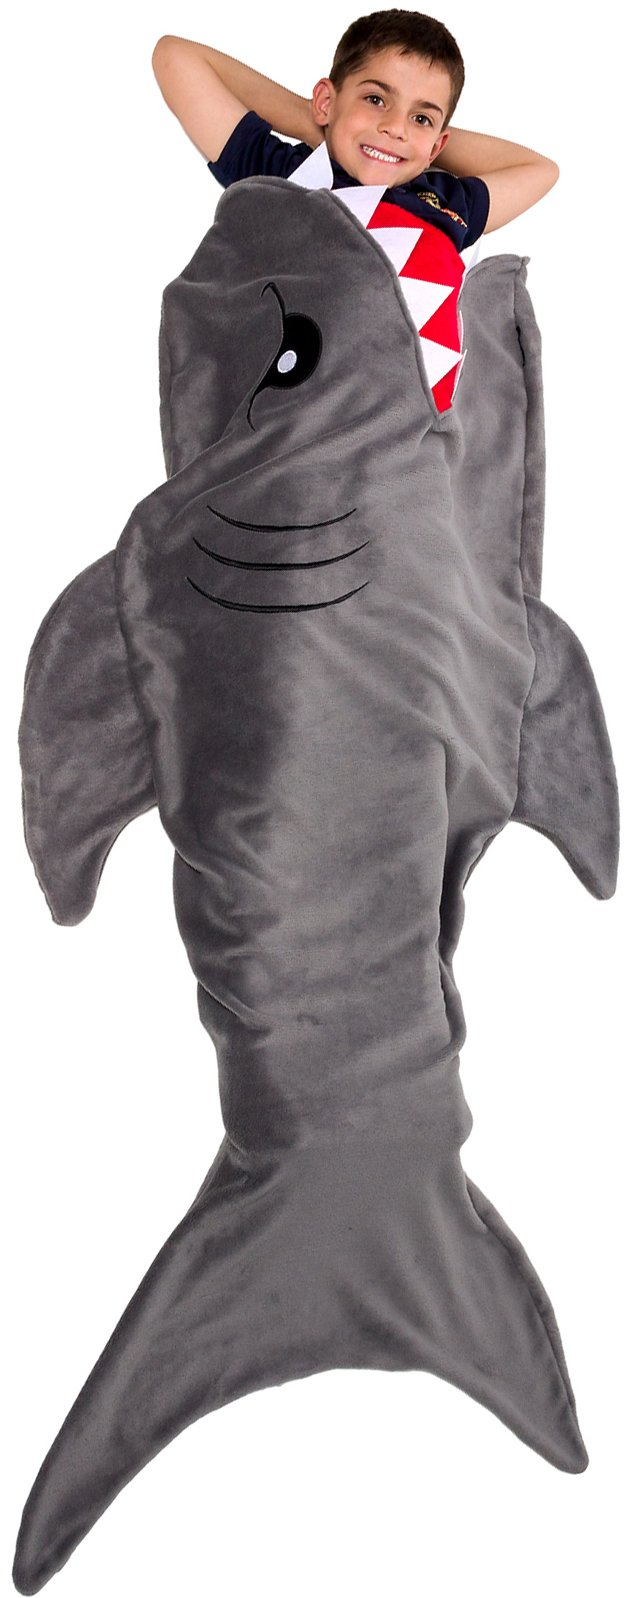 Silver Lilly Animal Tail Blanket - Plush Animal Sleeping Bag Blanket for Kids (Gray Shark) by Silver Lilly